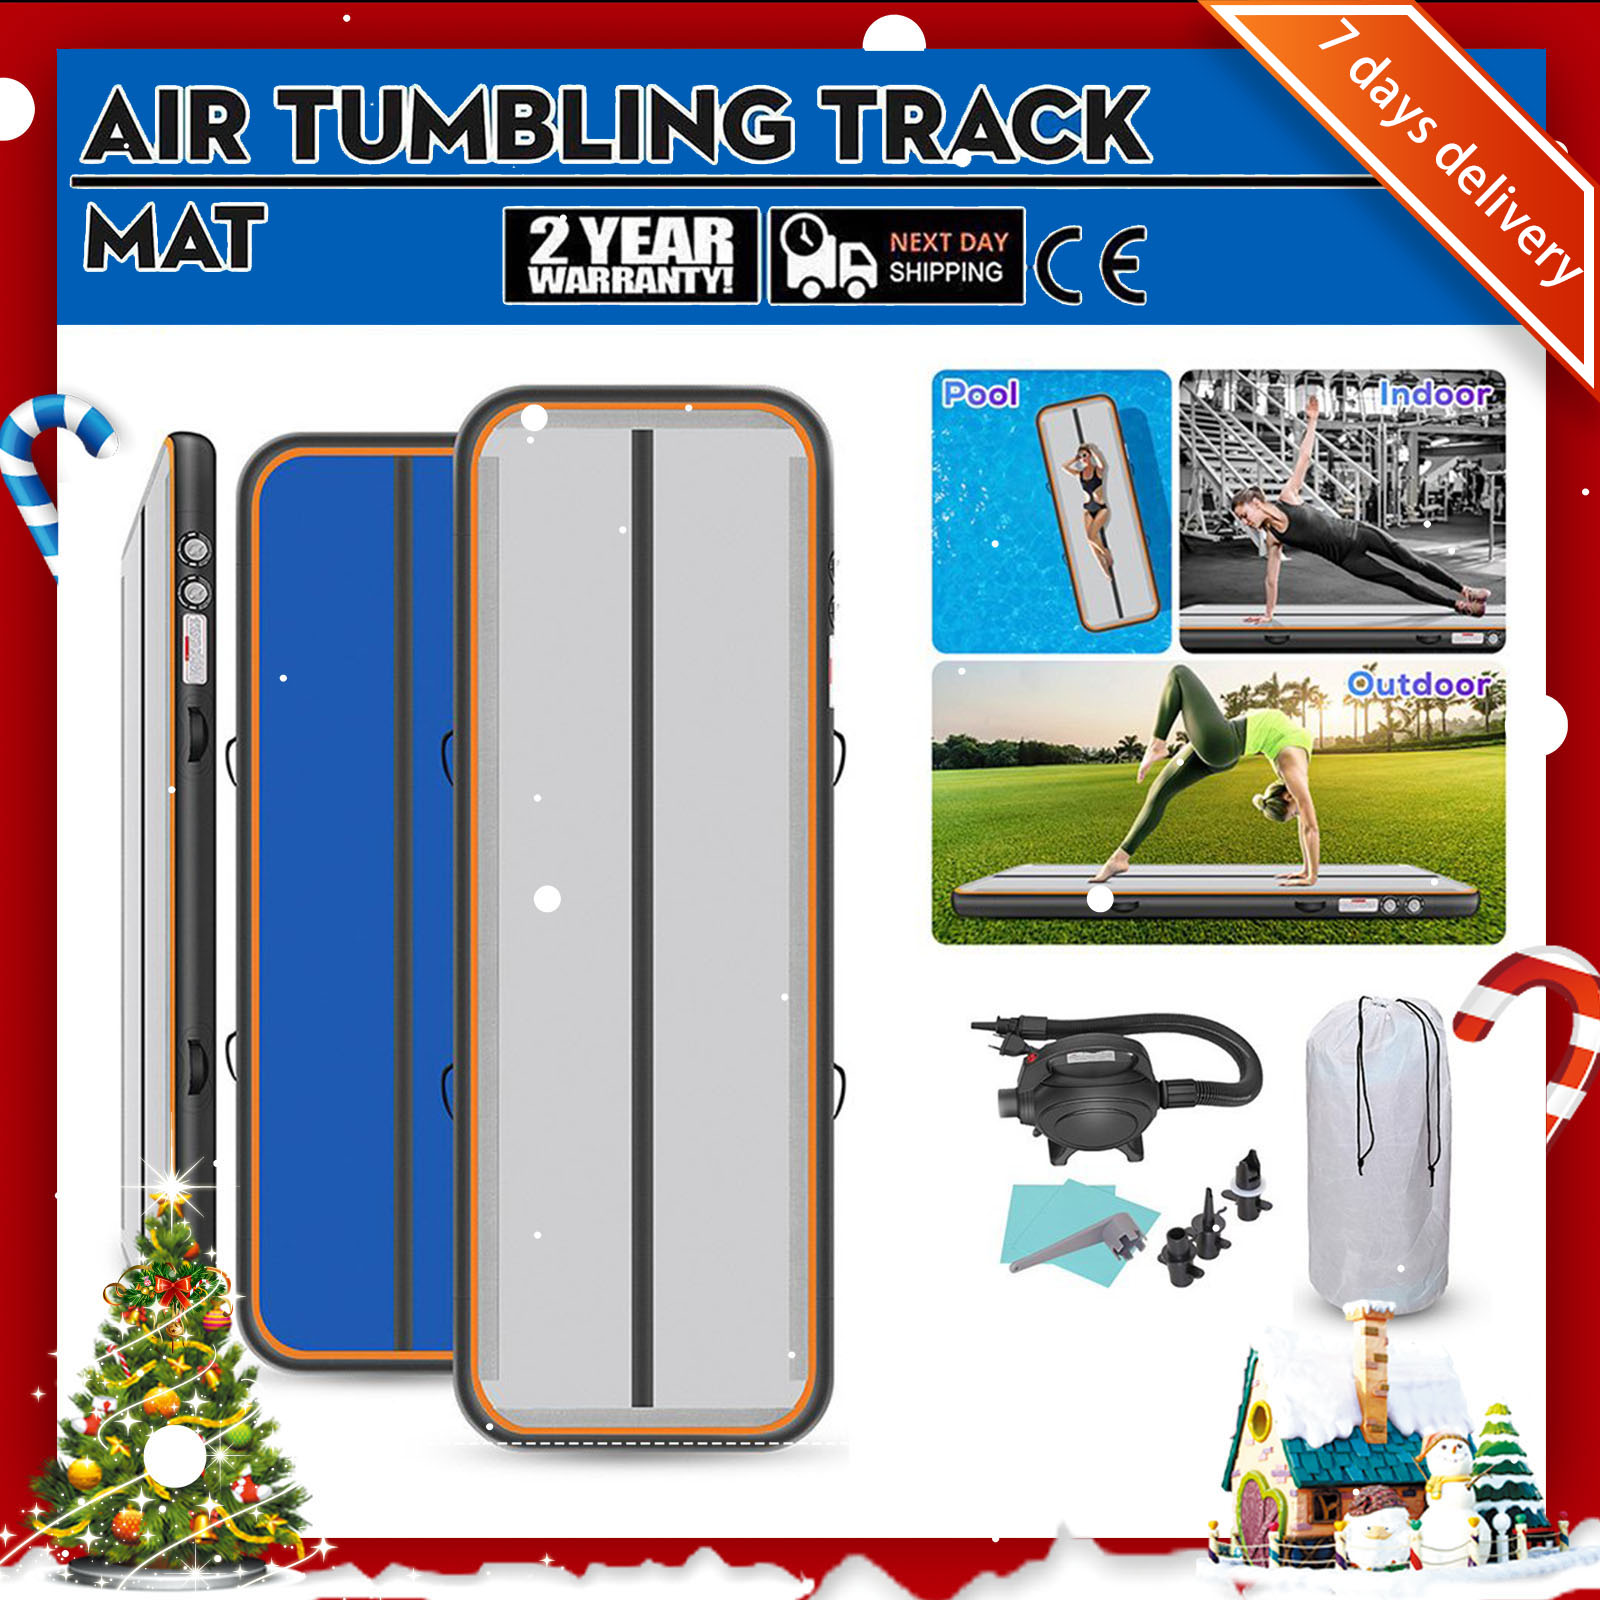 Rimdoc 4M 5M 6M Yoga Olympics Tumbling wrestling Inflatable Airtrack For <font><b>Kids</b></font> Christmas Gift Air Tumble Track Electronic Pump image